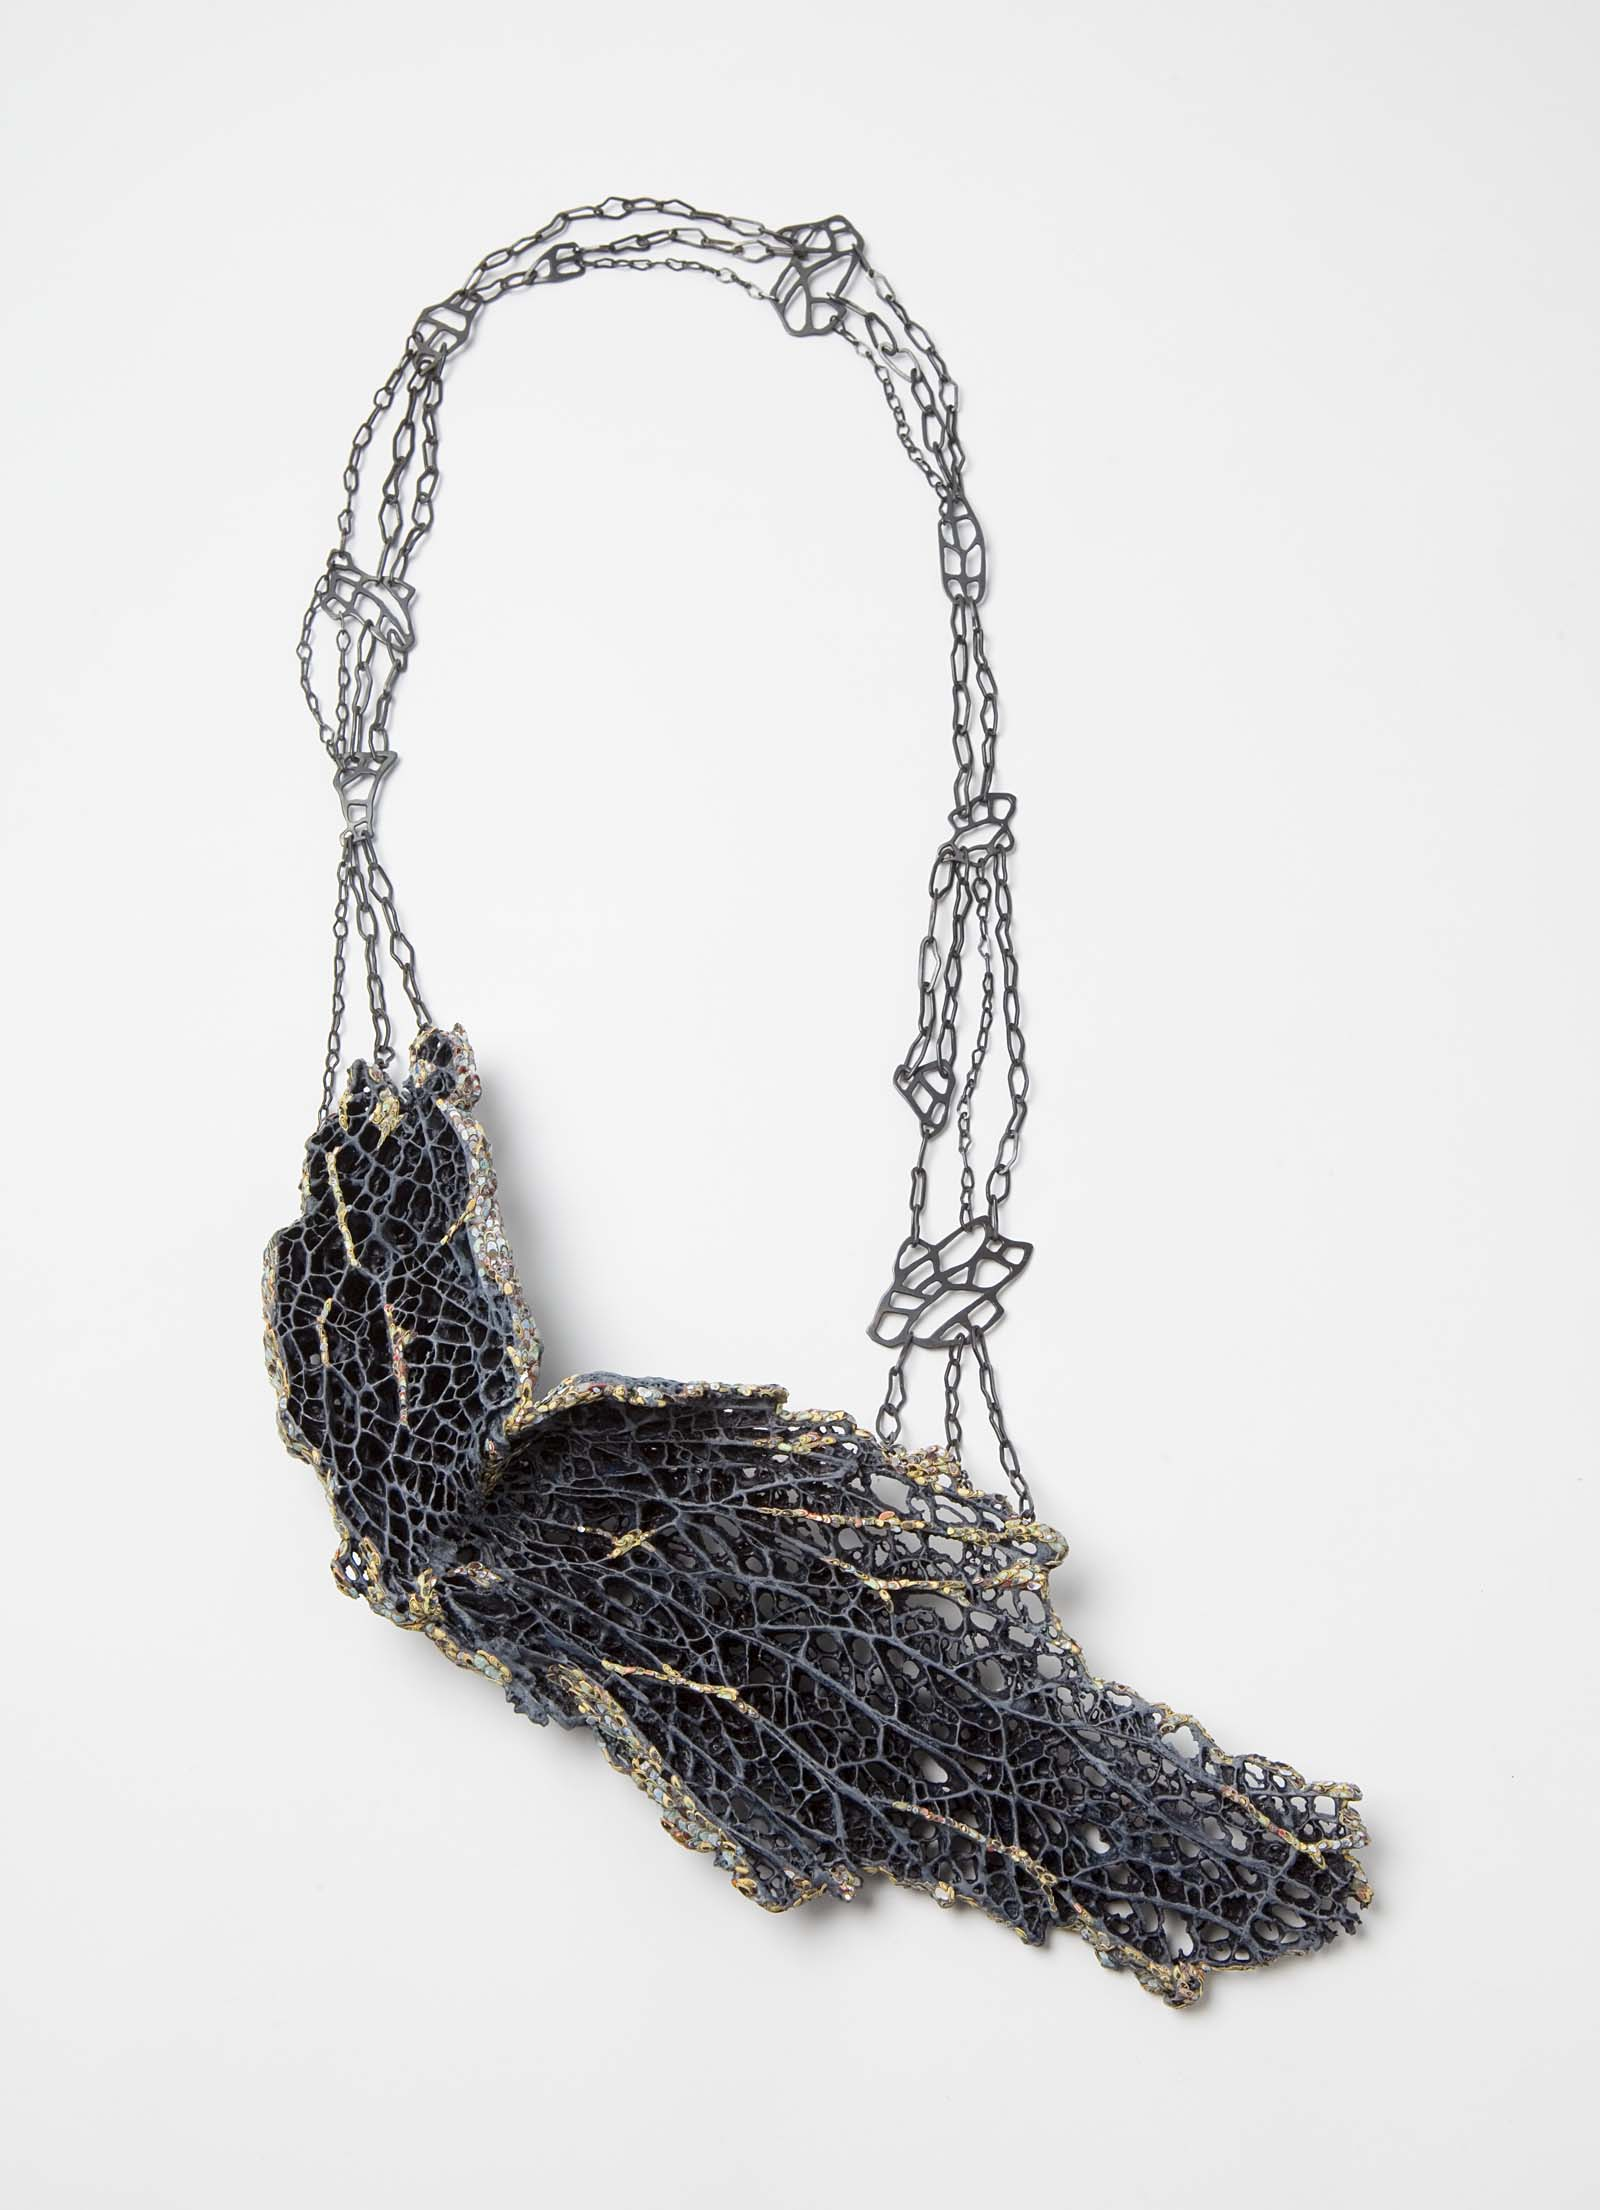 """Medulla 3"" I Necklace, 2014 I Cactus, graffiti, silver, paint I Photo: Mirei Takeuchi"